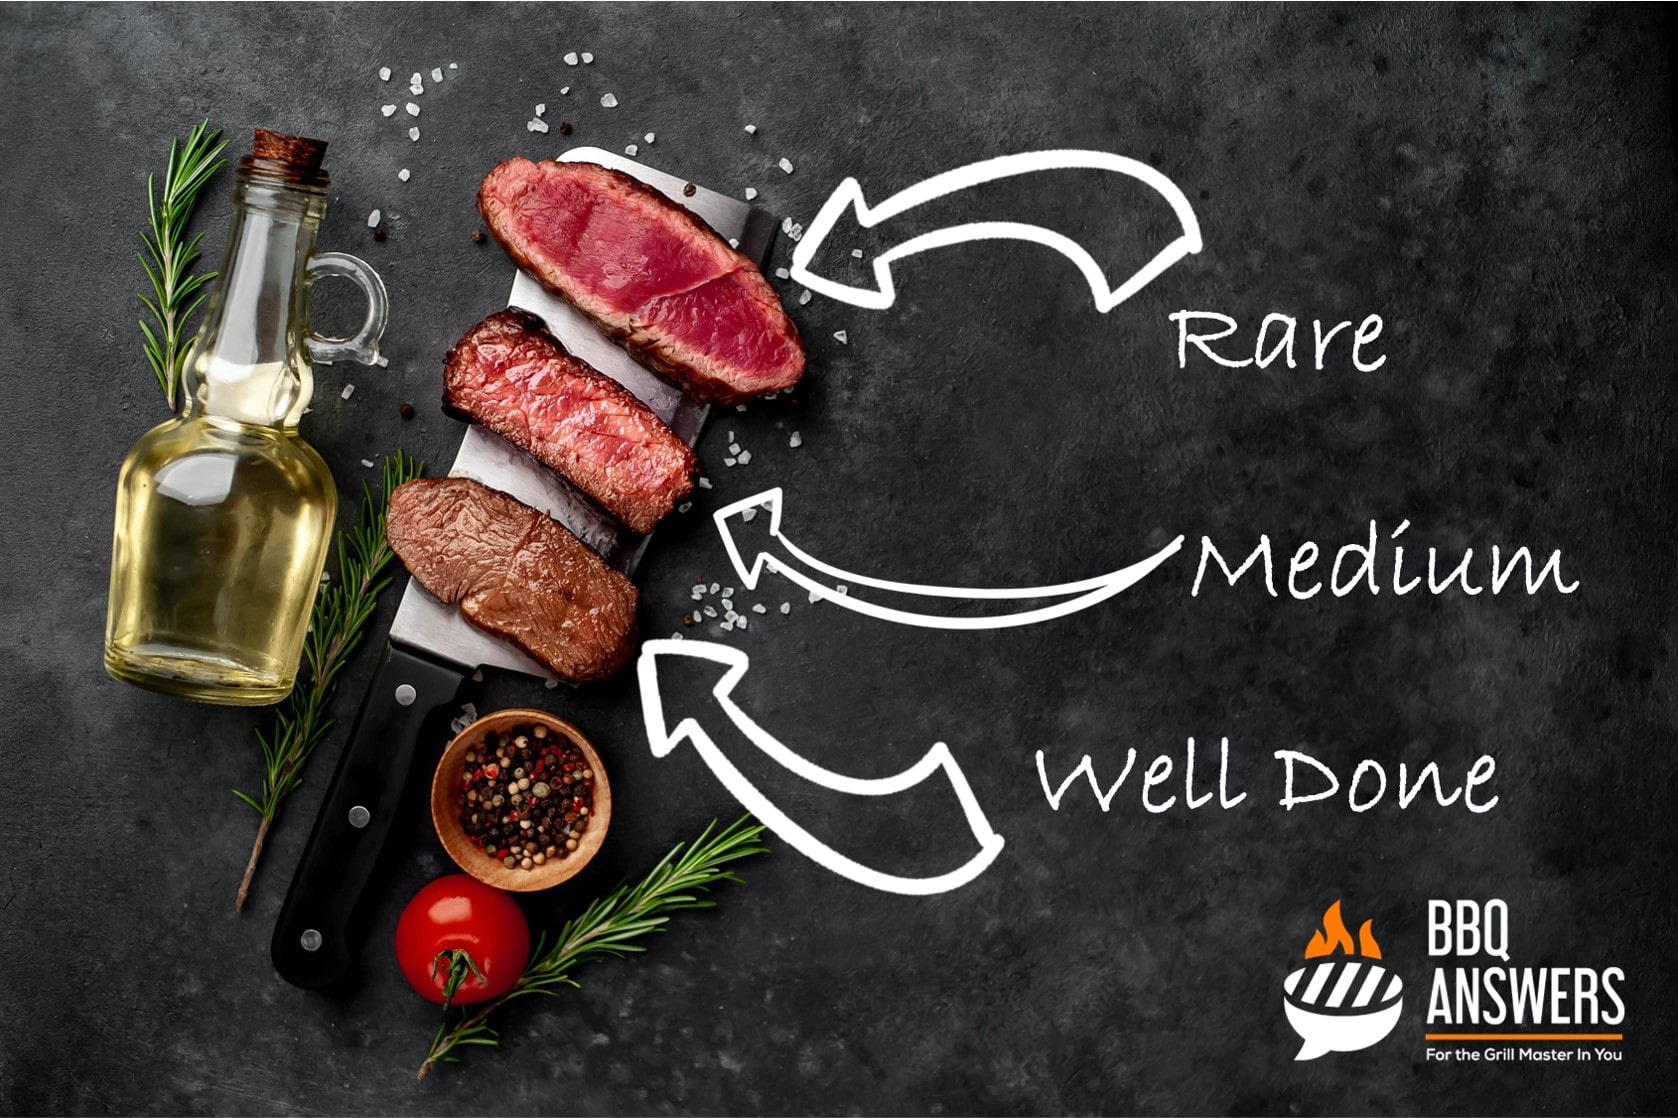 How to Test Steak Doneness? From Rare to Well Done